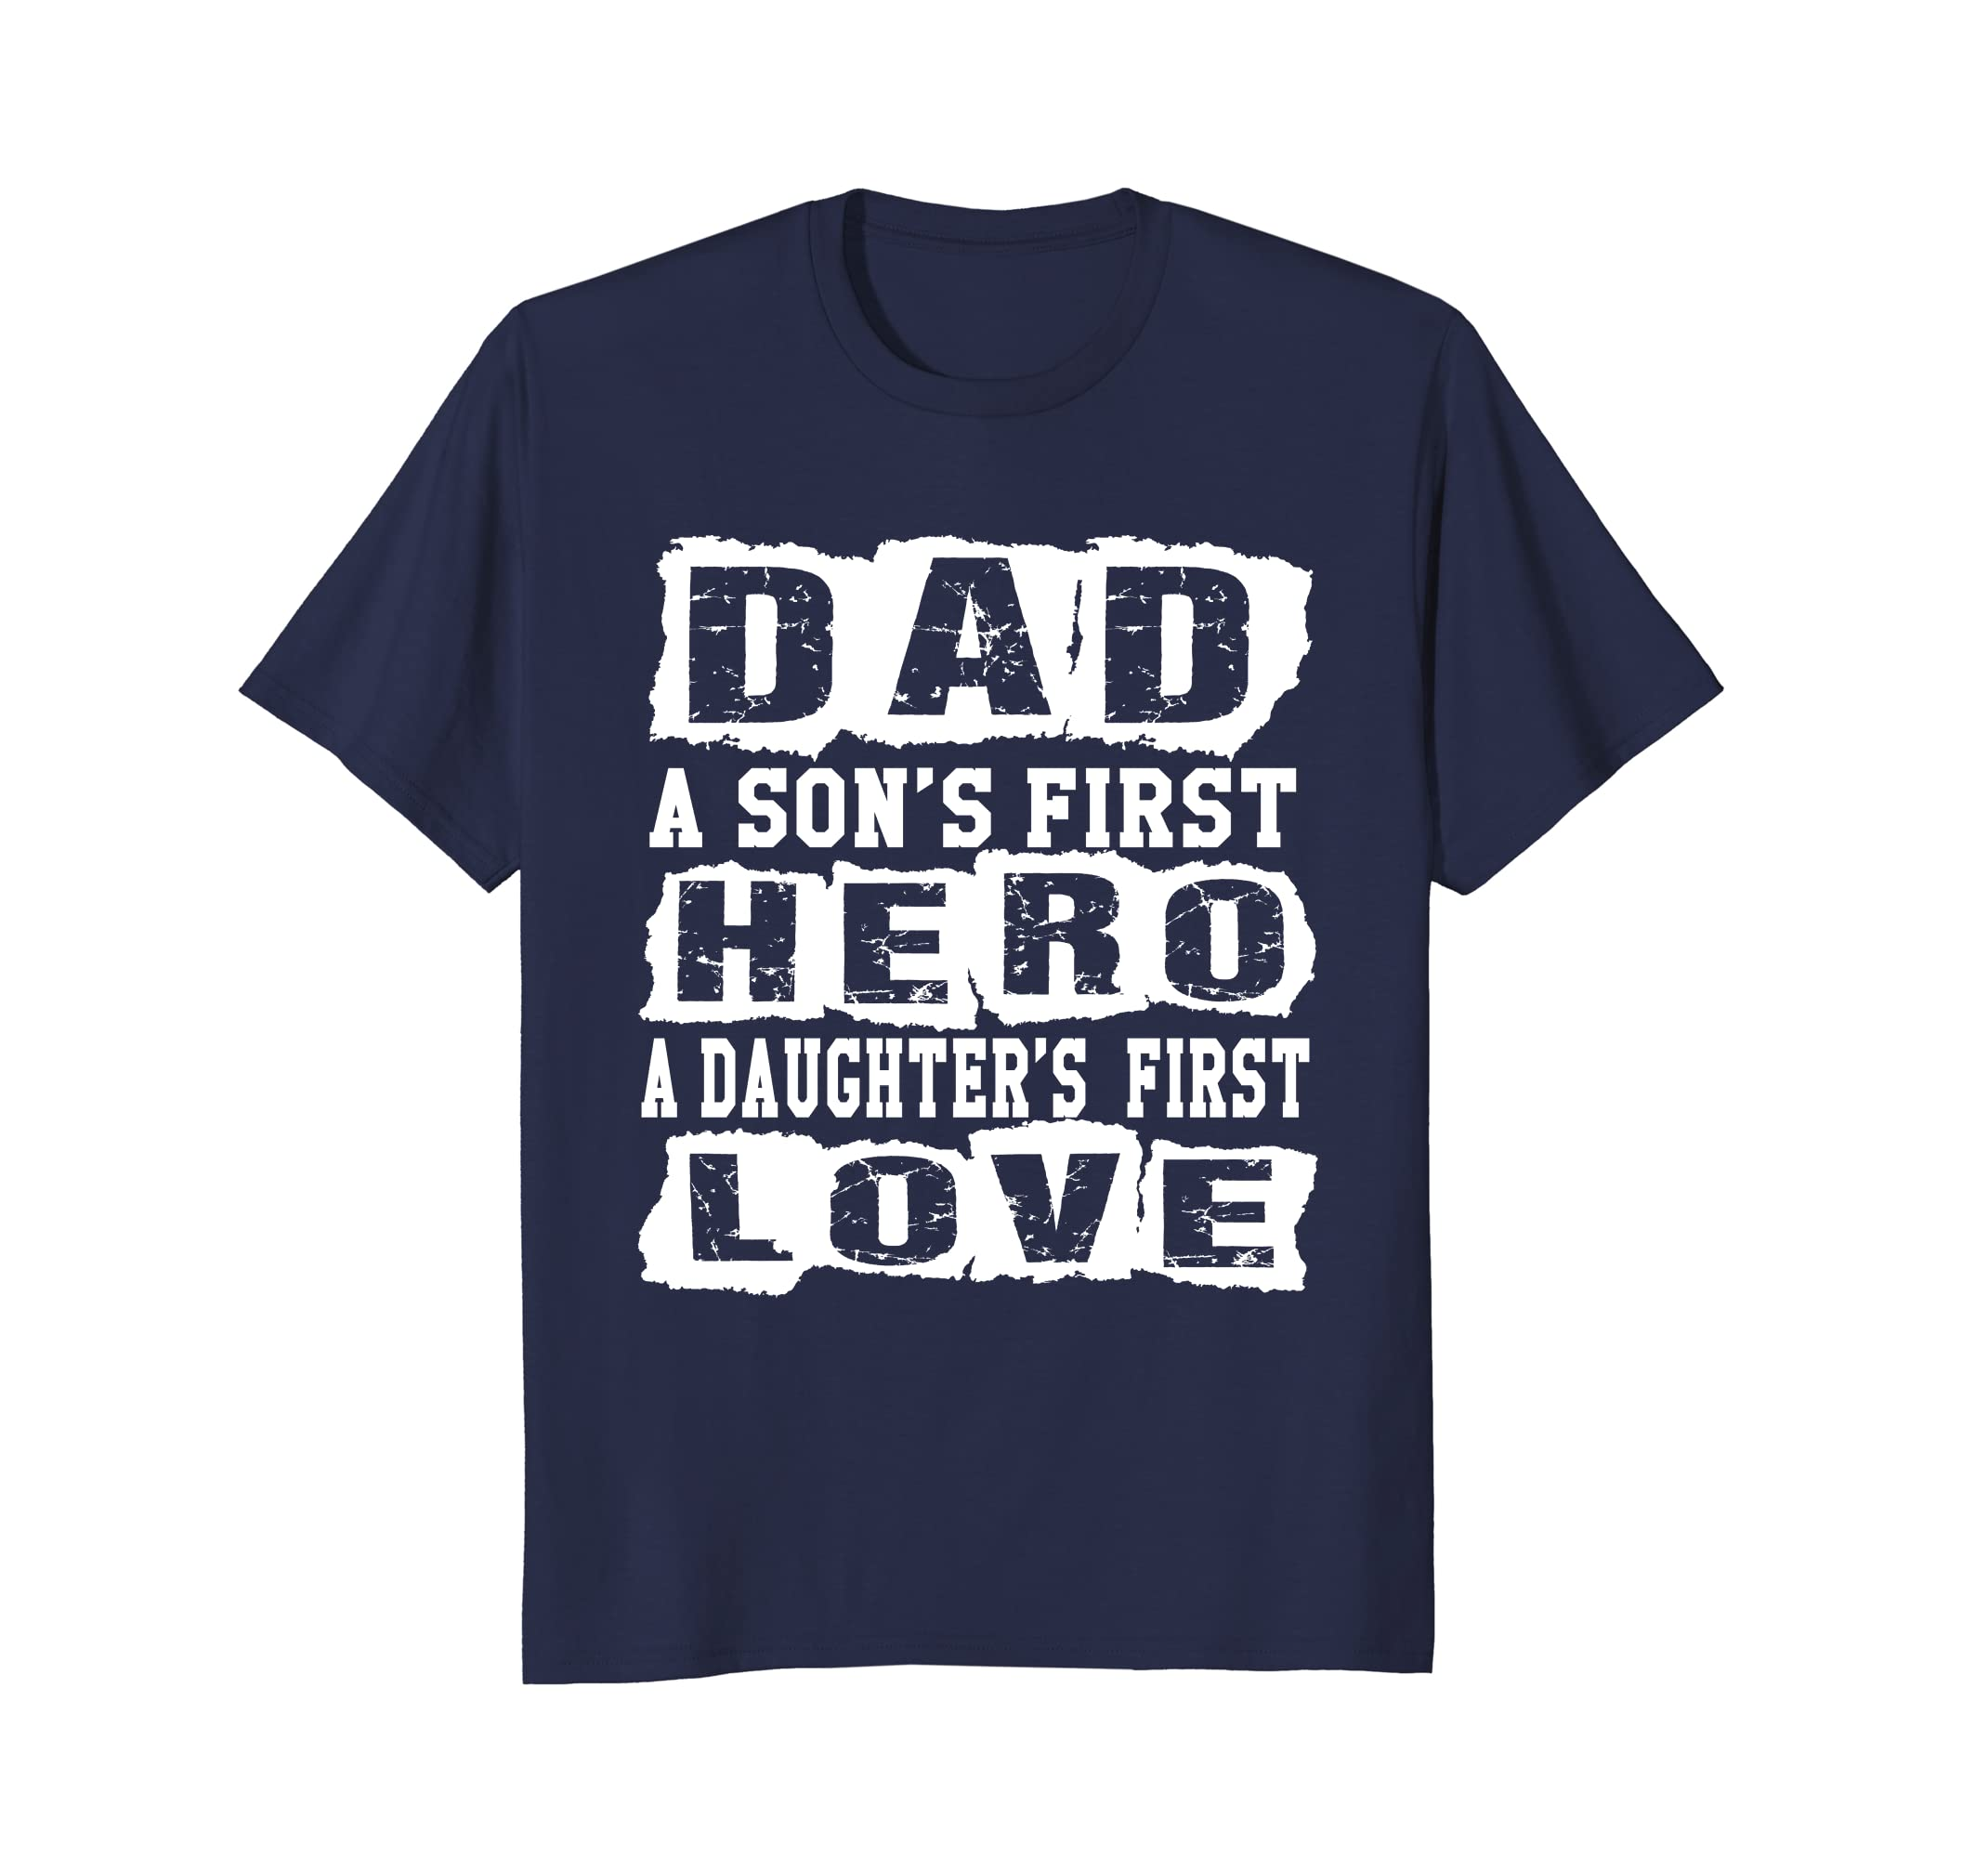 02ed87a3 Mens Cute Daddy Son Daughter Shirt New Dad Fathers Day T-shirt-anz ...